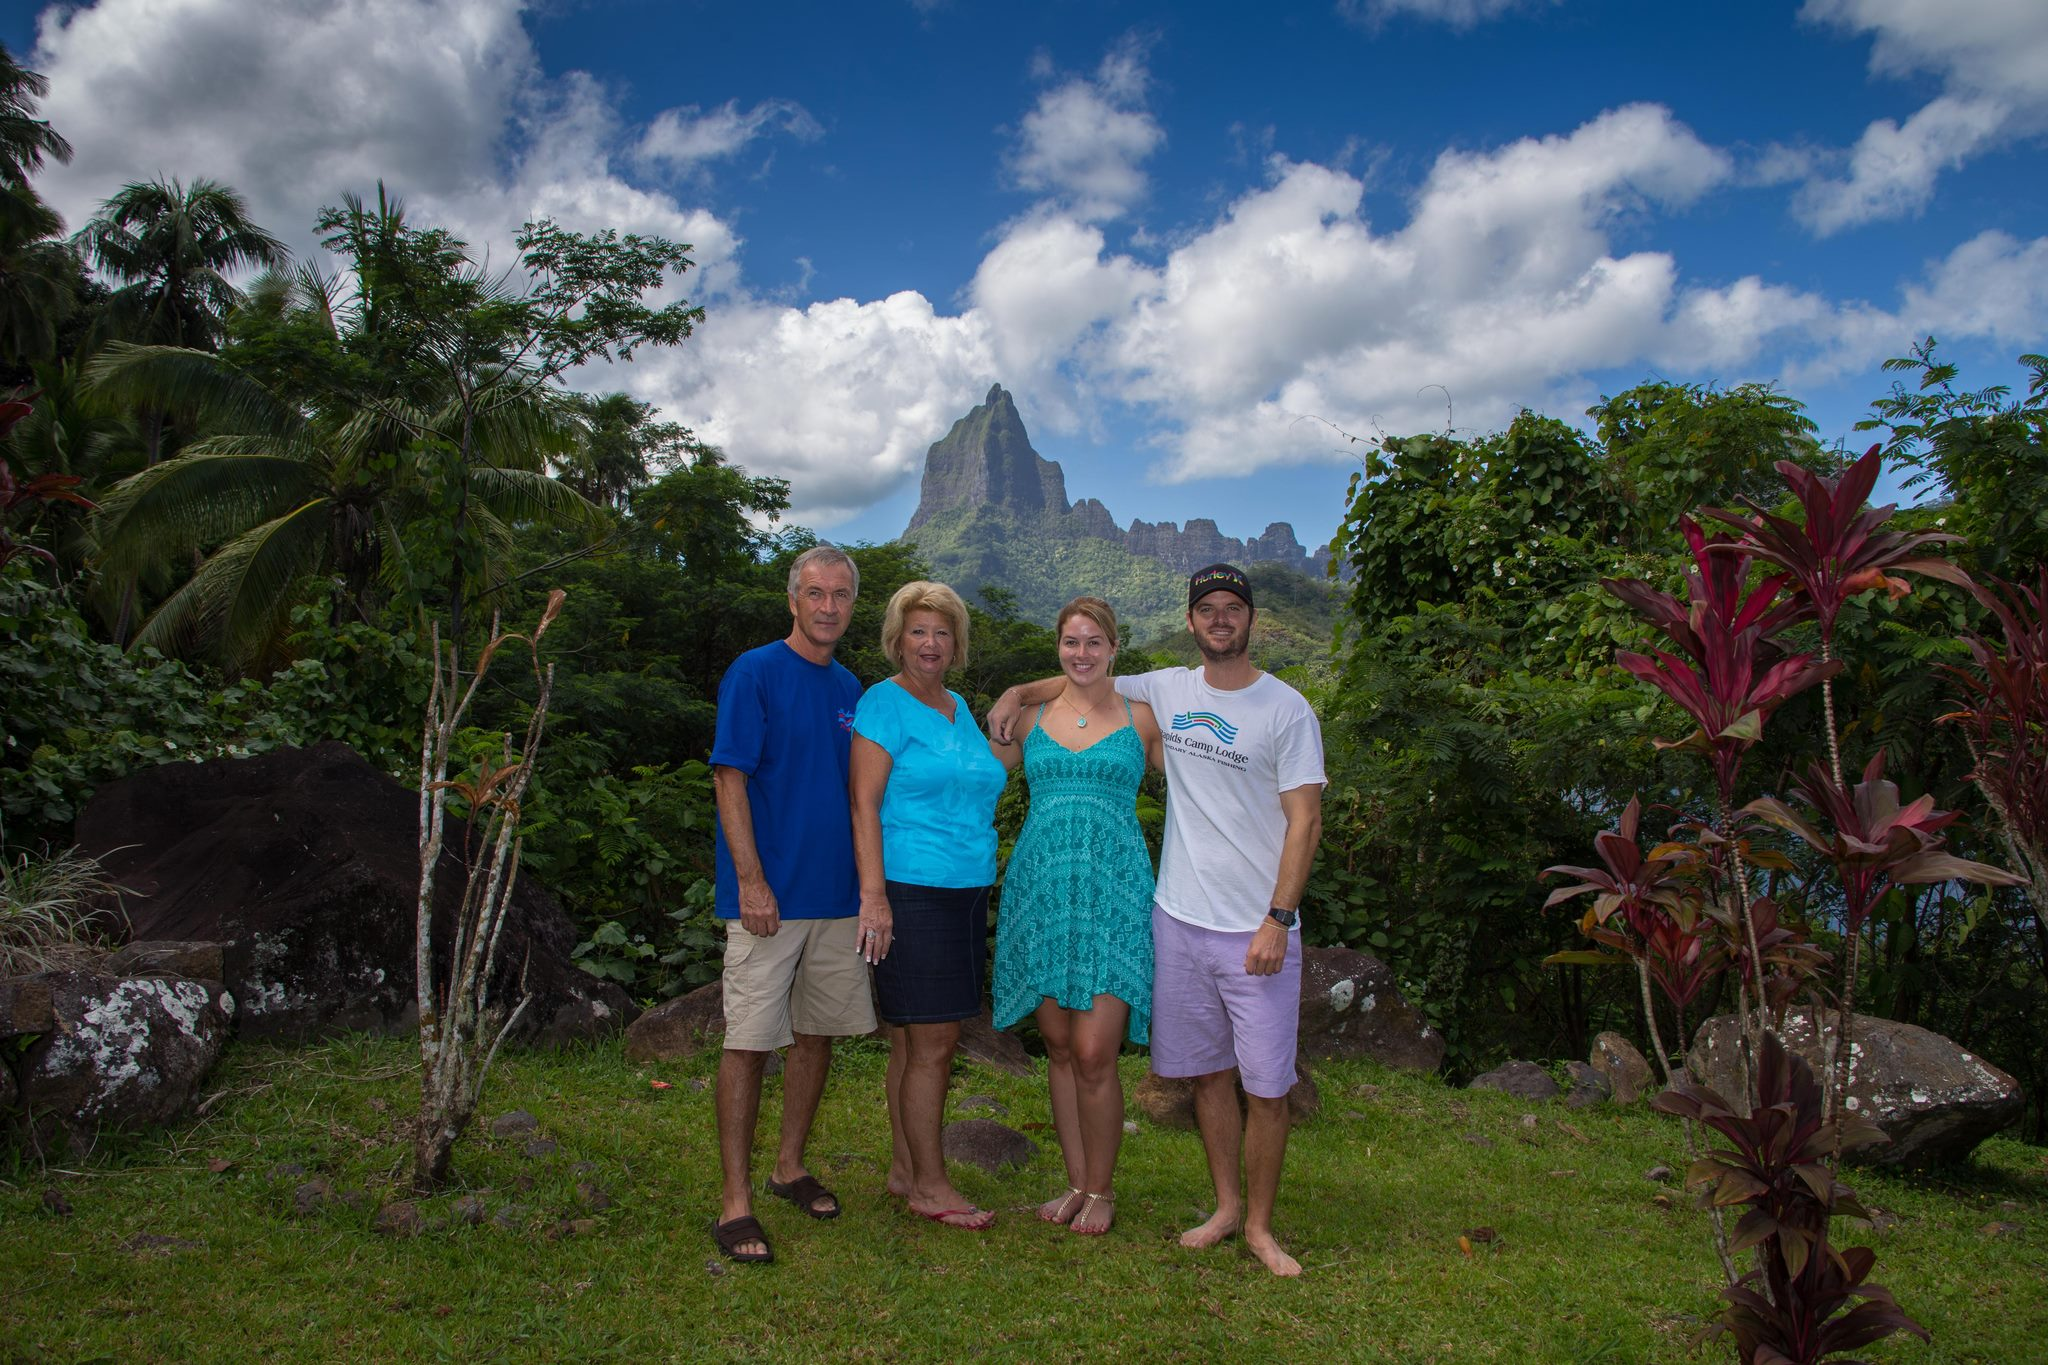 the view from the lawn of our rental house in Moorea